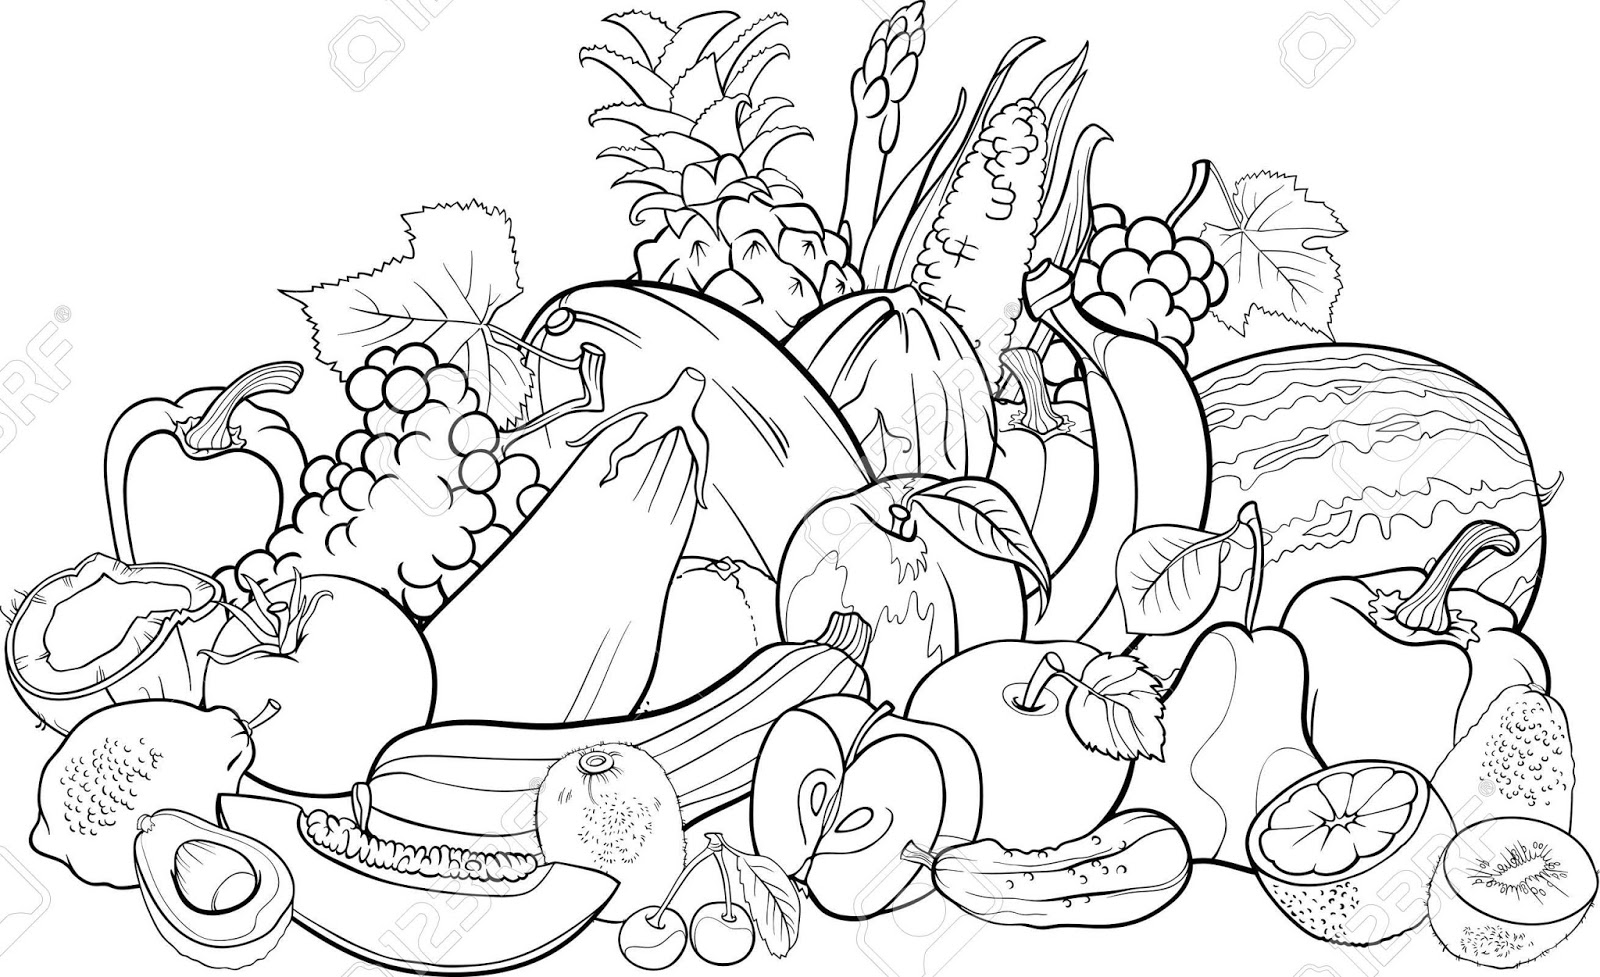 Vegetable garden kids drawing - Fruits And Vegetables Big Group Coloring Pages For Kids